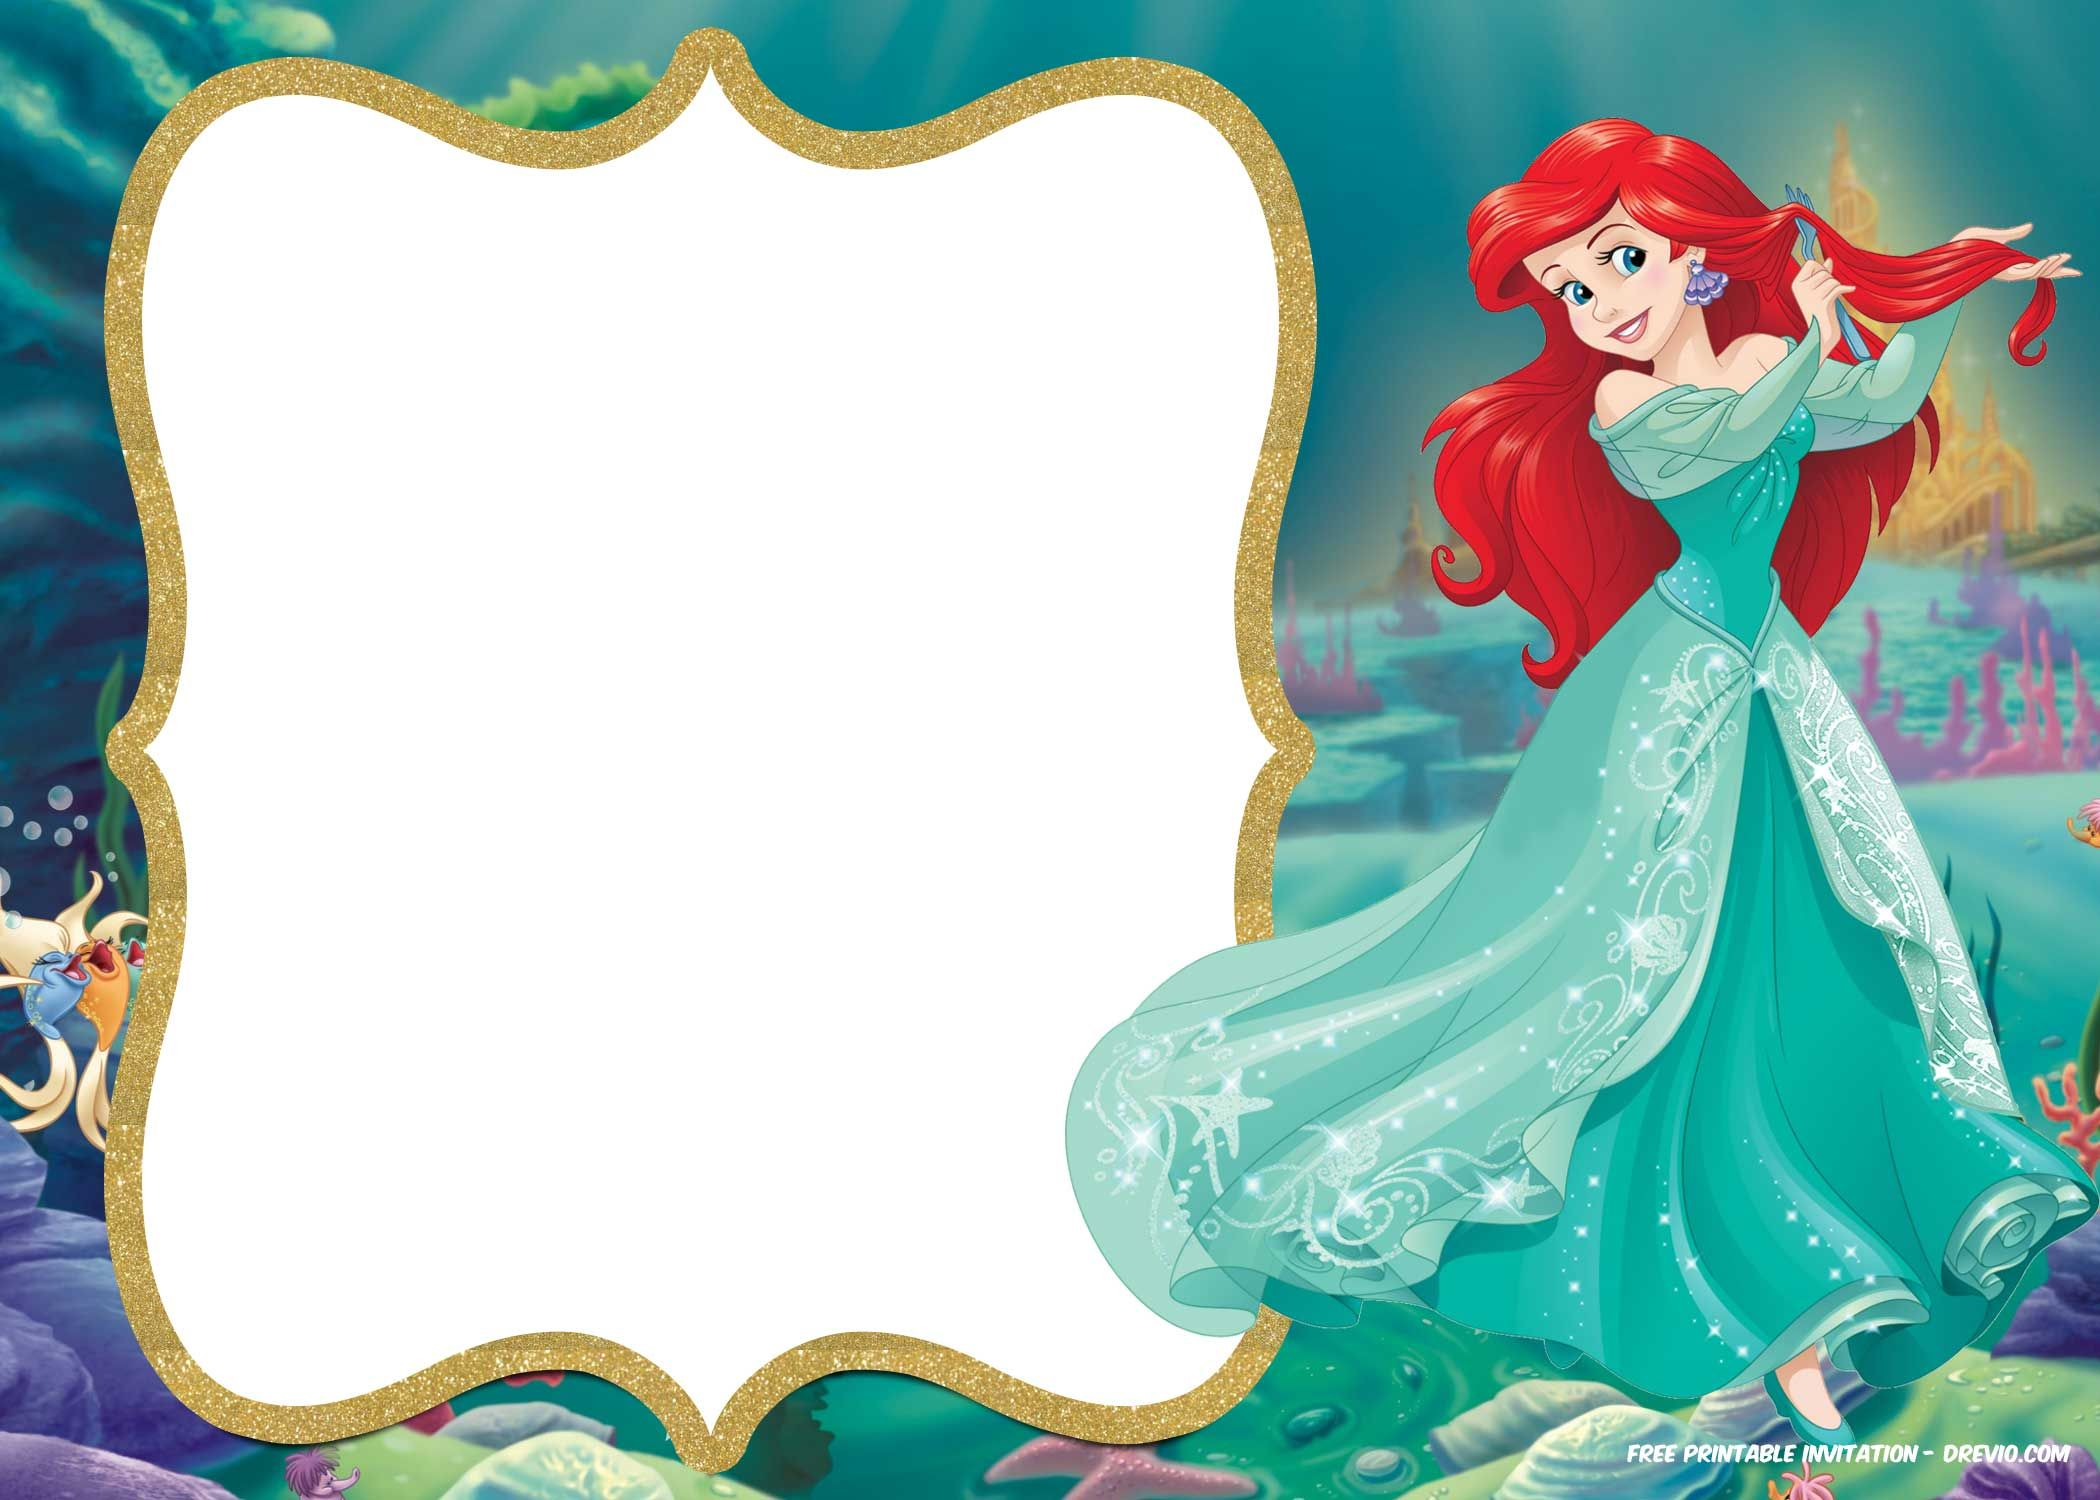 Little Mermaid Royal Invitation Templates Backgrounds Pinterest